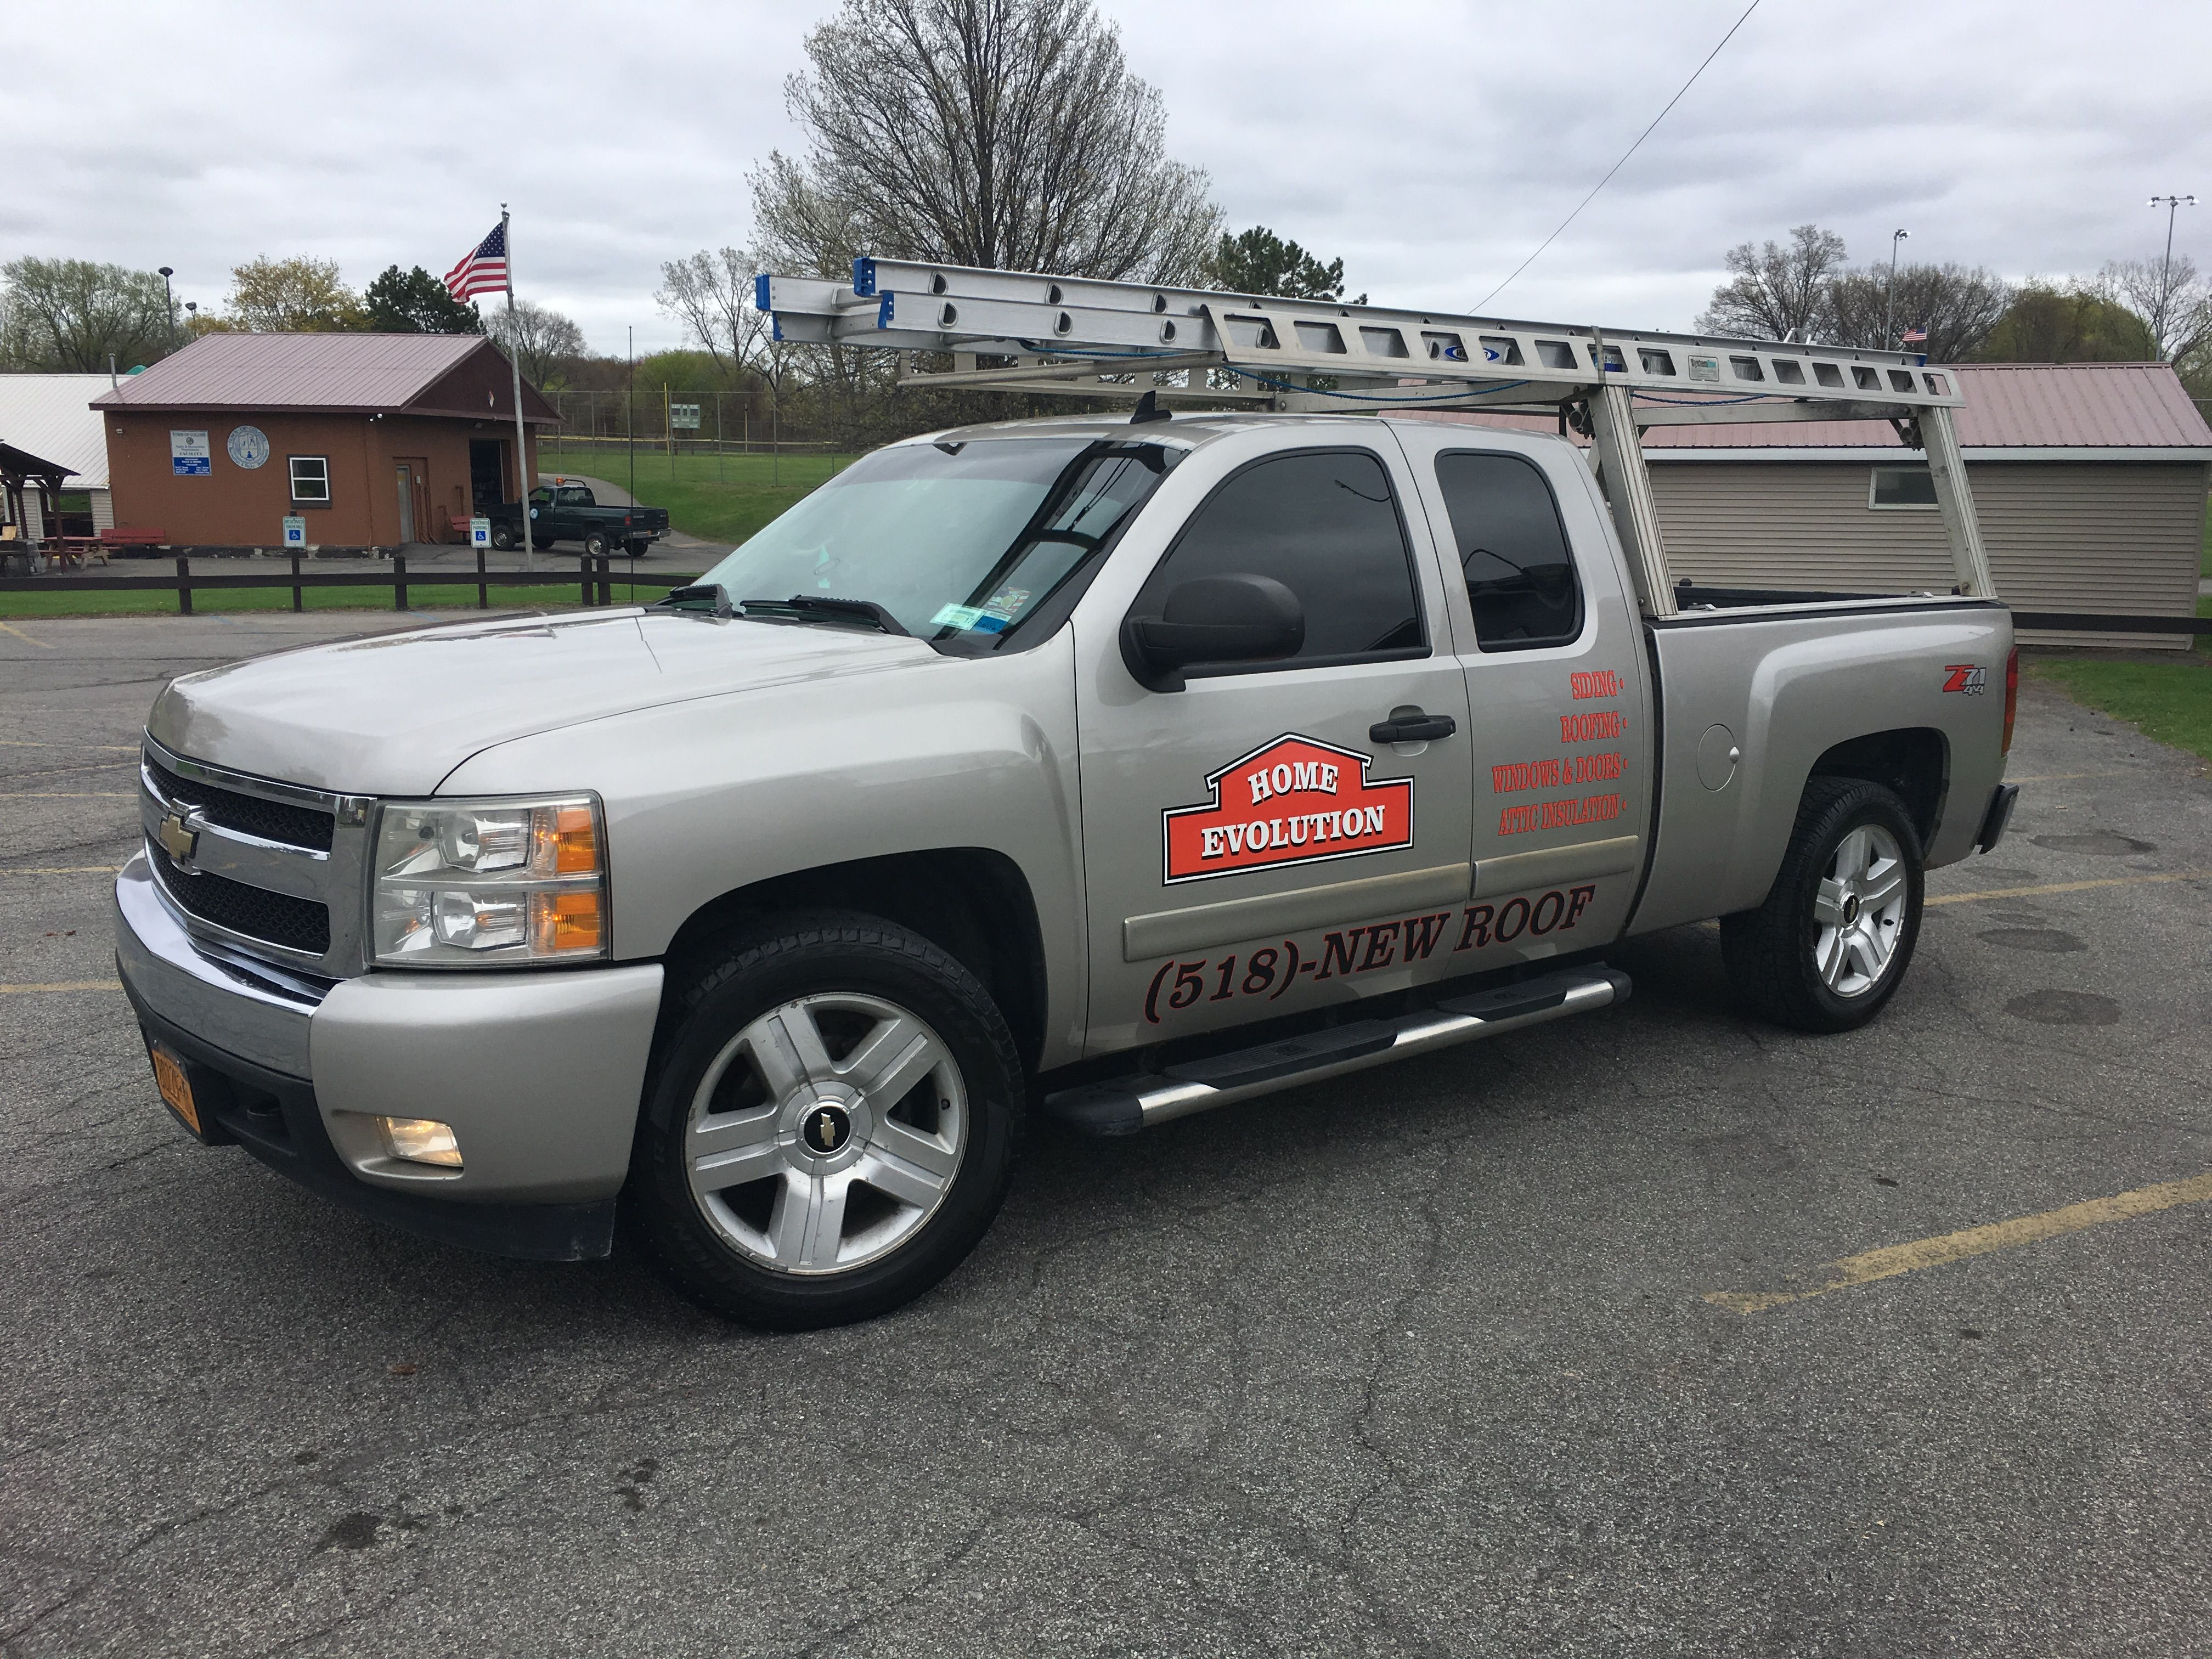 Home evolutions ny - Home Evolution Roofing Company Truck Roofing Contractors Albany Ny